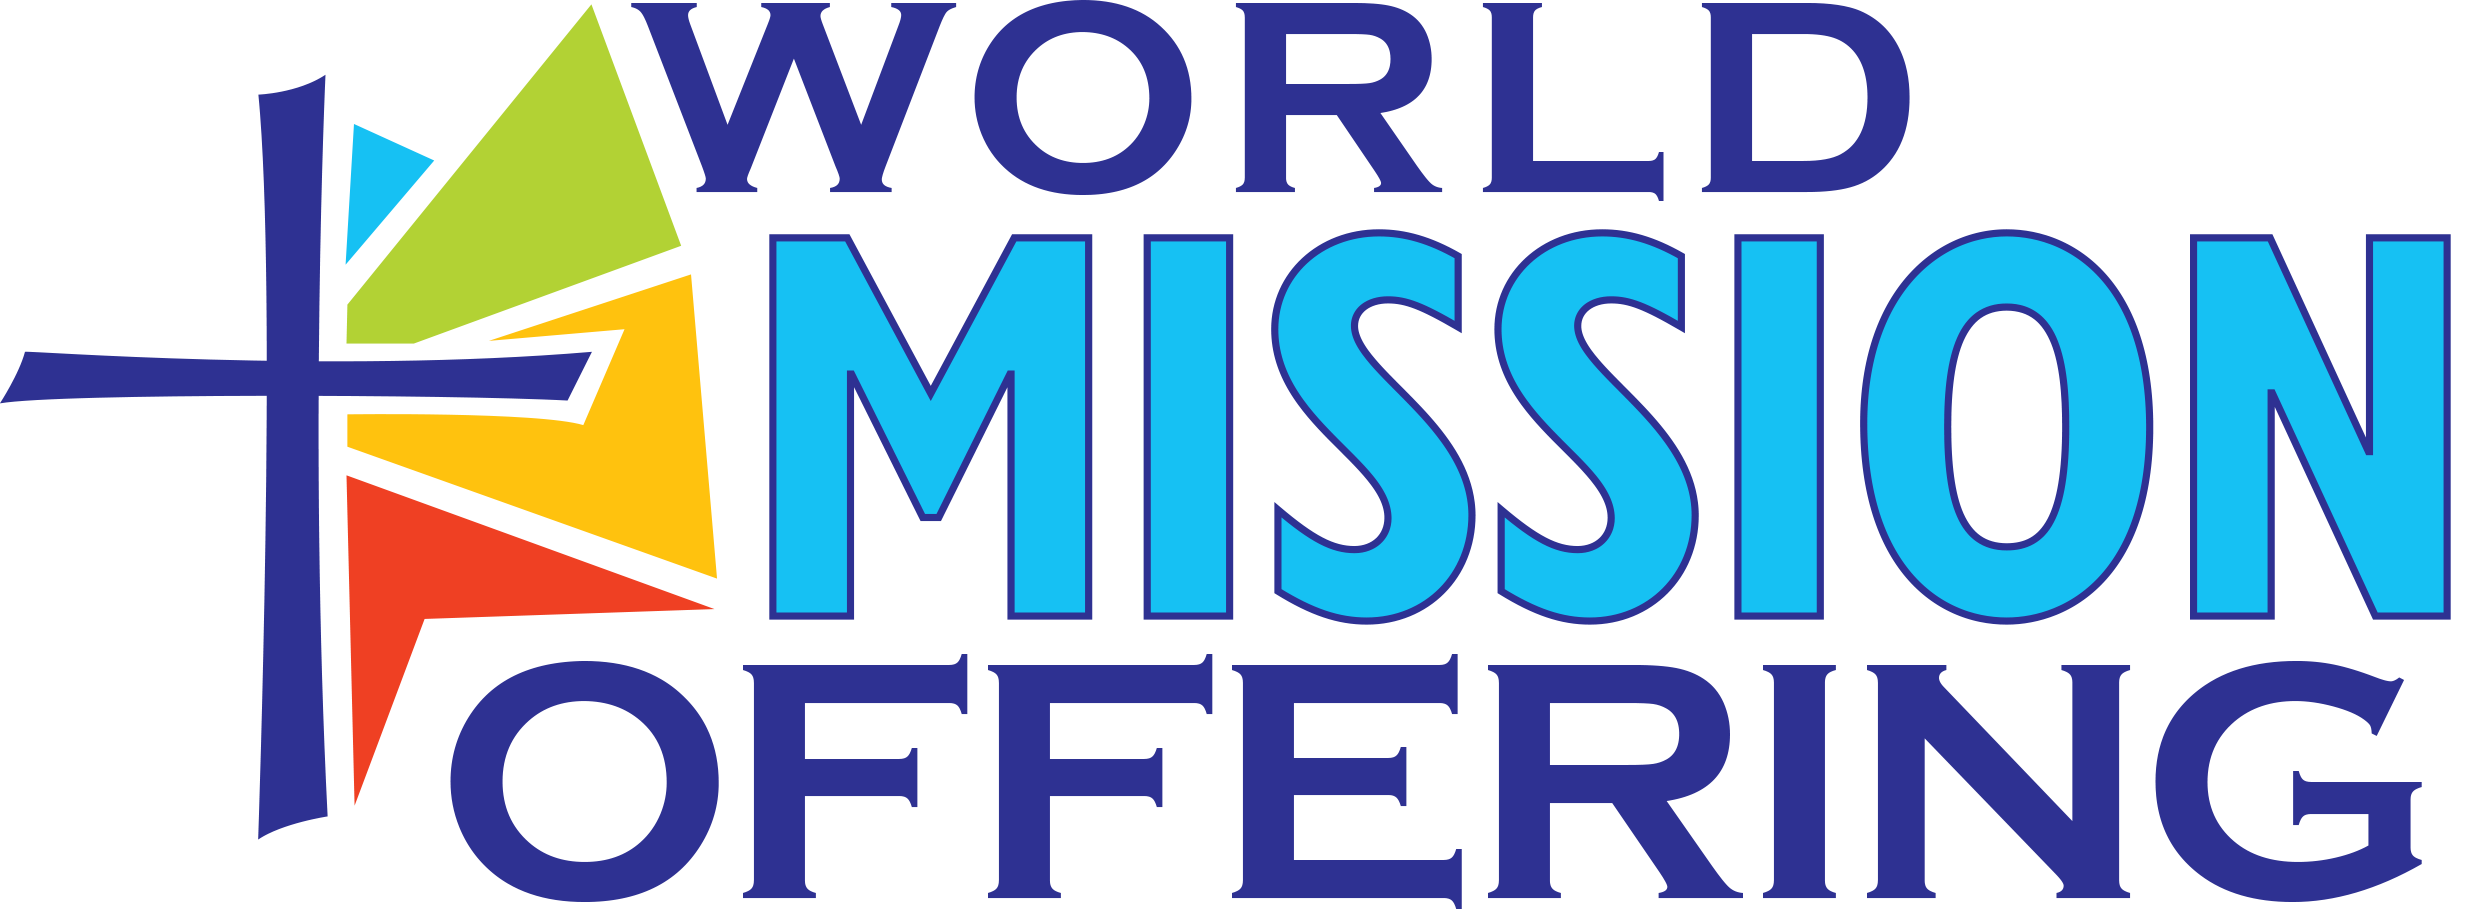 2015 World Mission Offering.